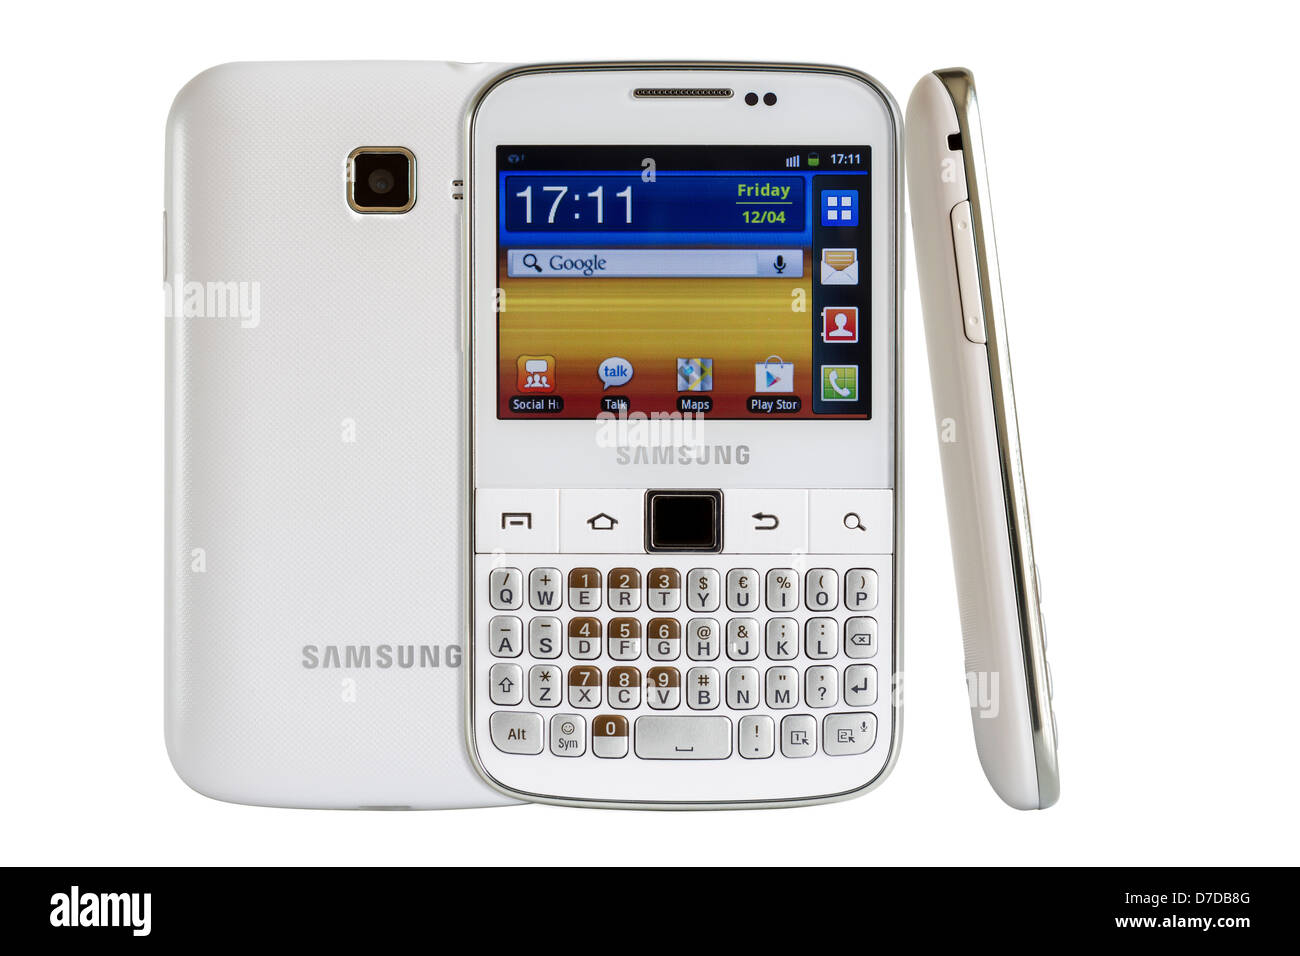 Samsung Galaxy Y Pro B5510 is a Android smart phone with full QWERTY